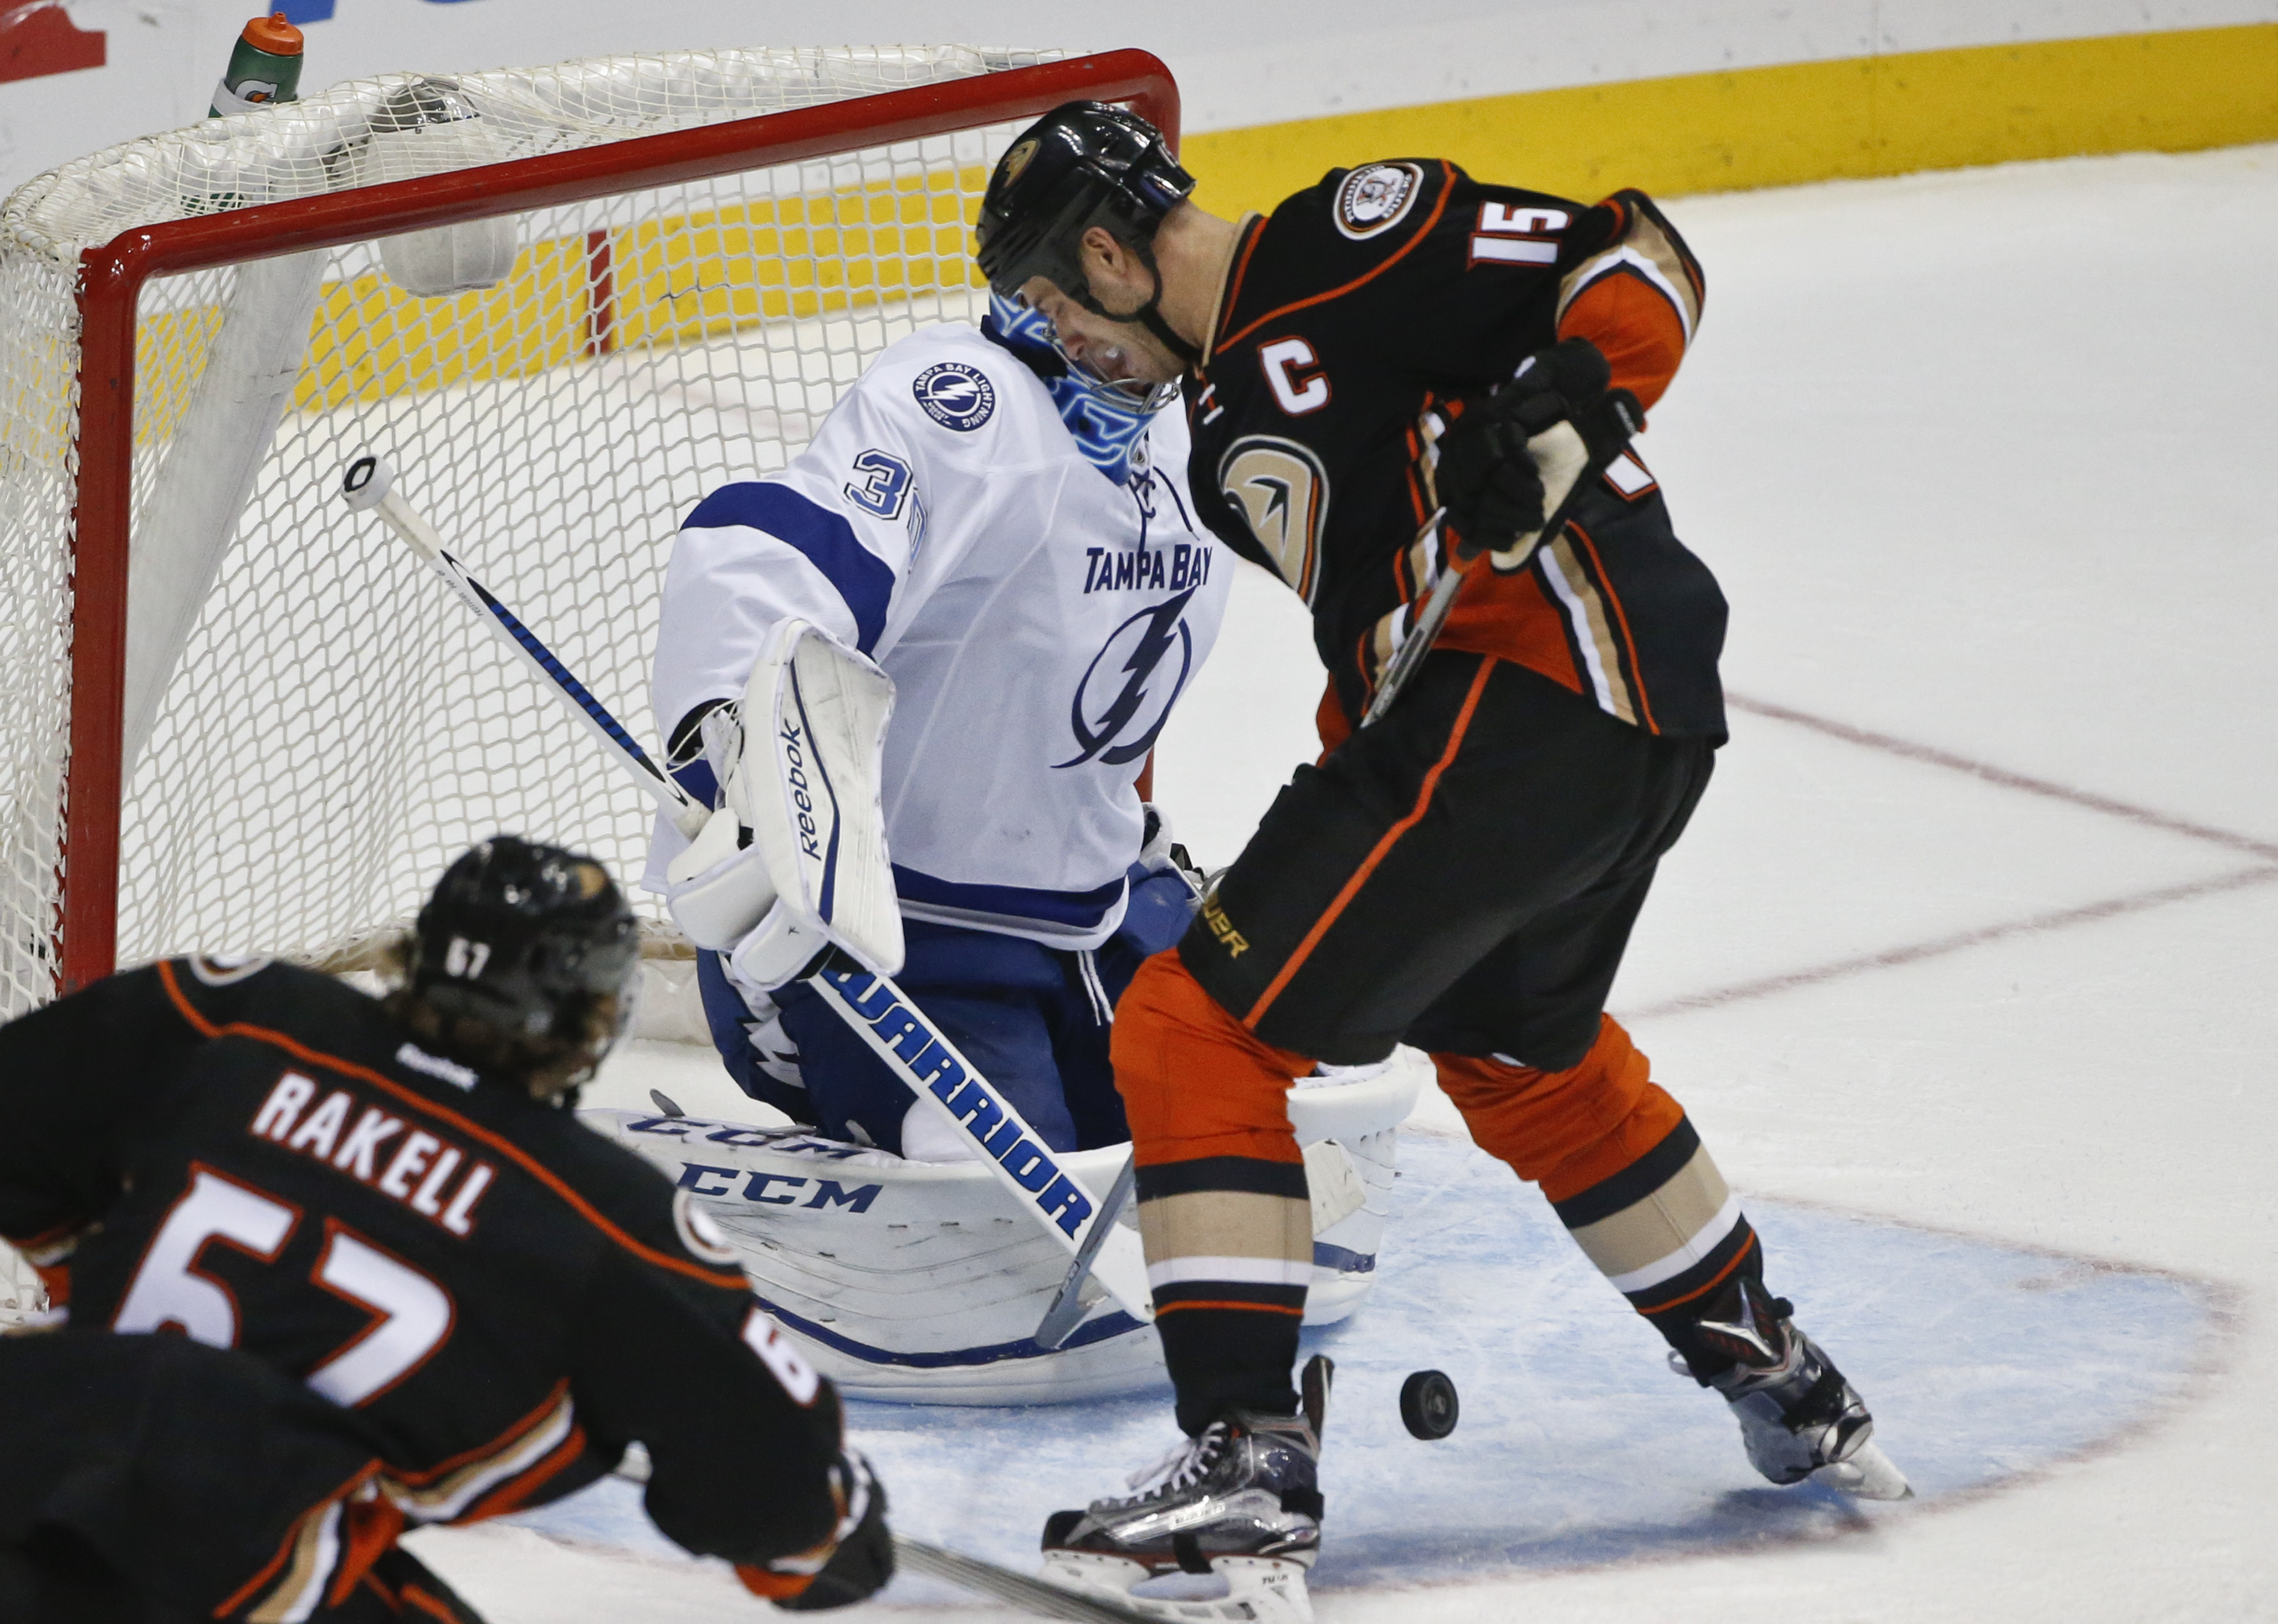 Anaheim Ducks center Ryan Getzlaf tries to get his stick on the puck while standing in the Tampa Bay Lightning crease with goalie Ben Bishop during the second period of a NHL hockey game Wednesday, Dec. 2, 2015, in Anaheim, Calif.  (AP Photo/Lenny Ignelzi